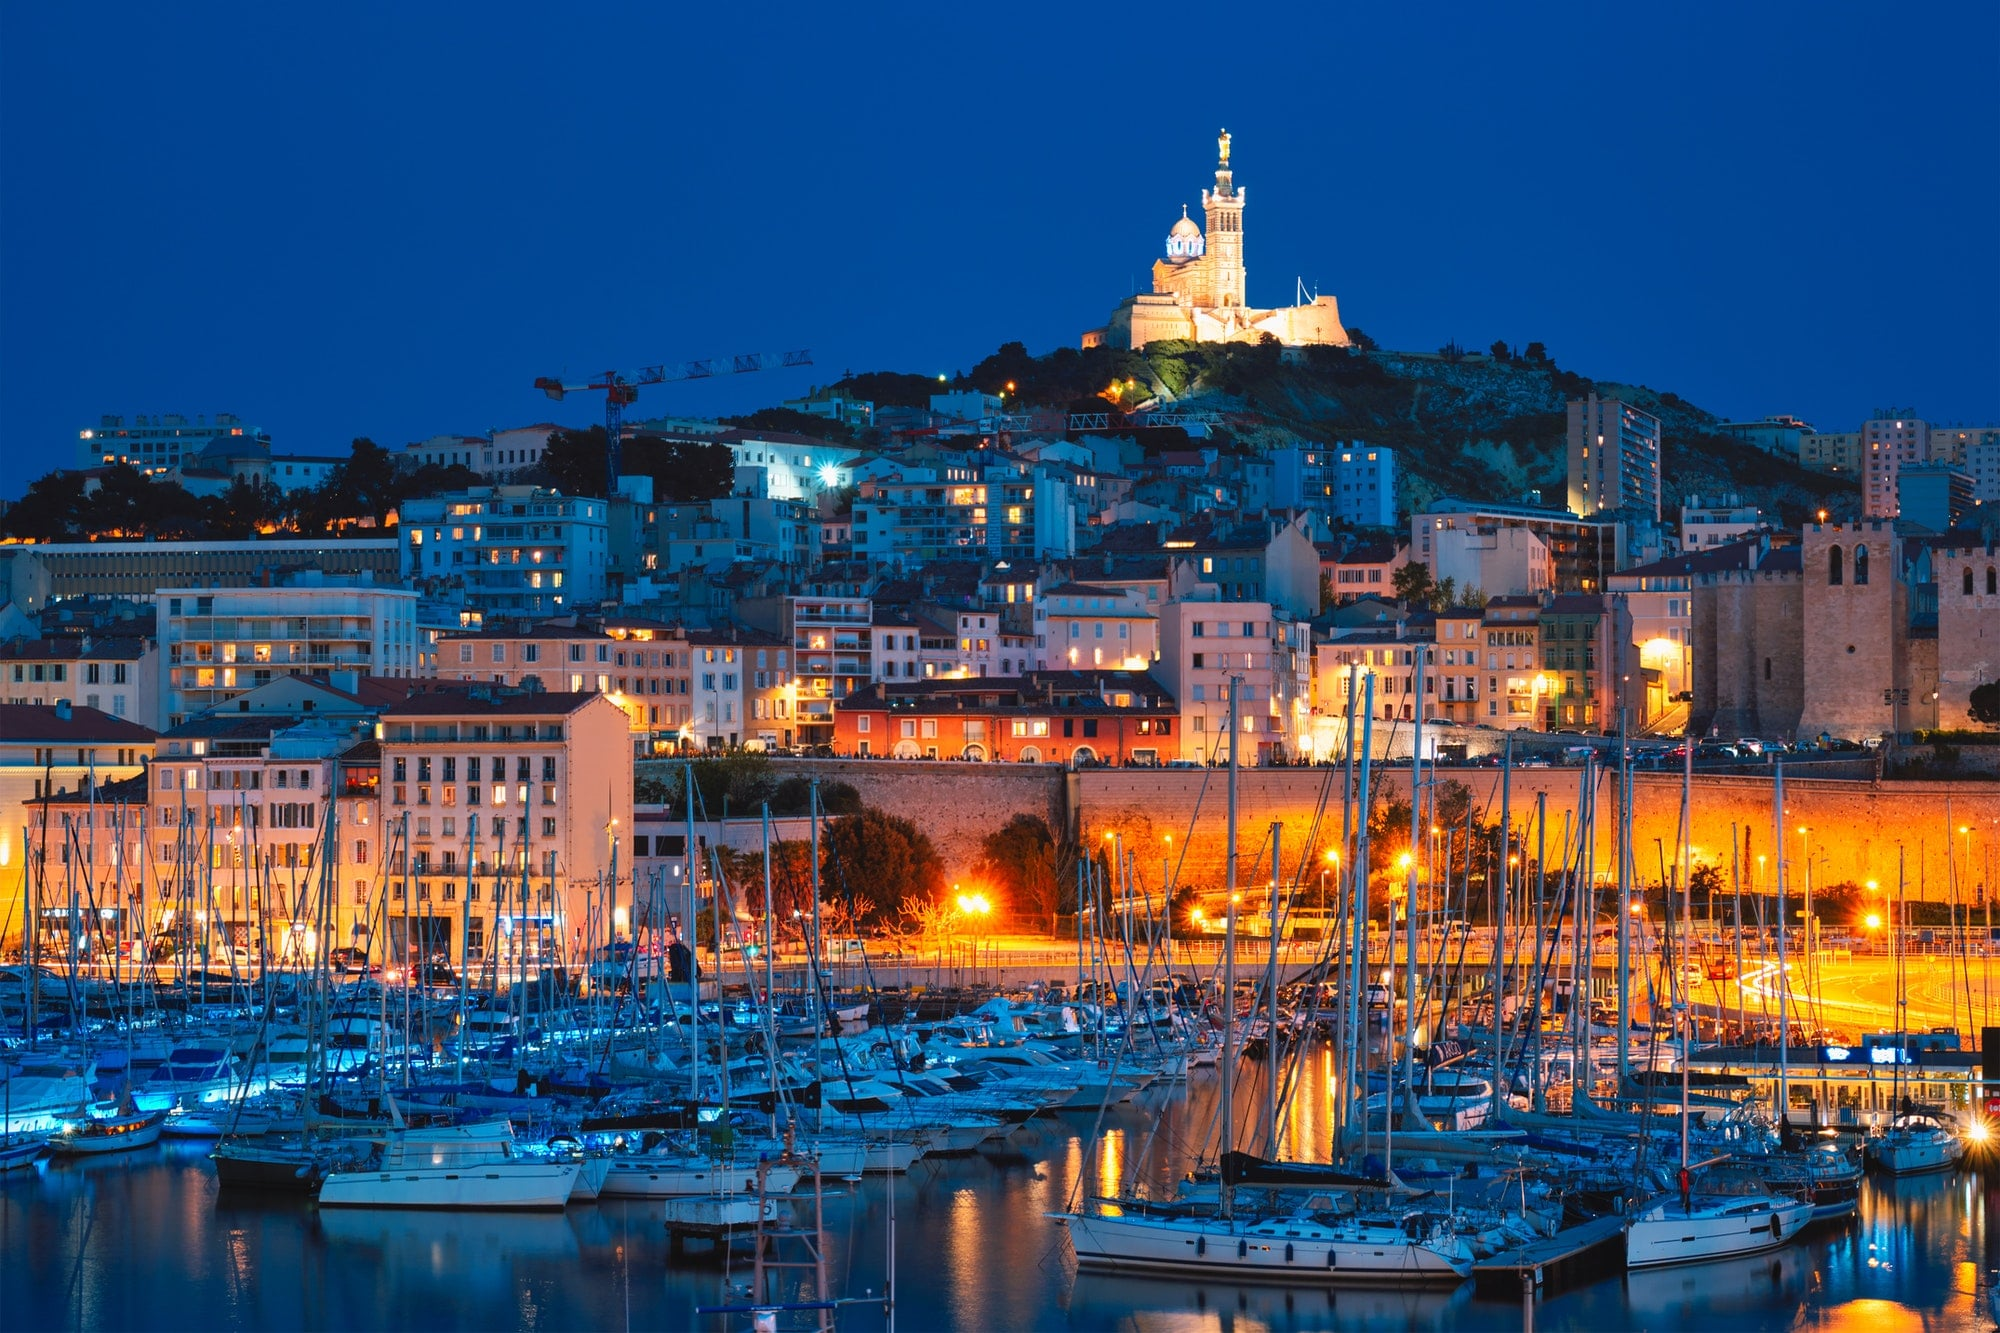 Marseille Old Port in the night. Marseille, France